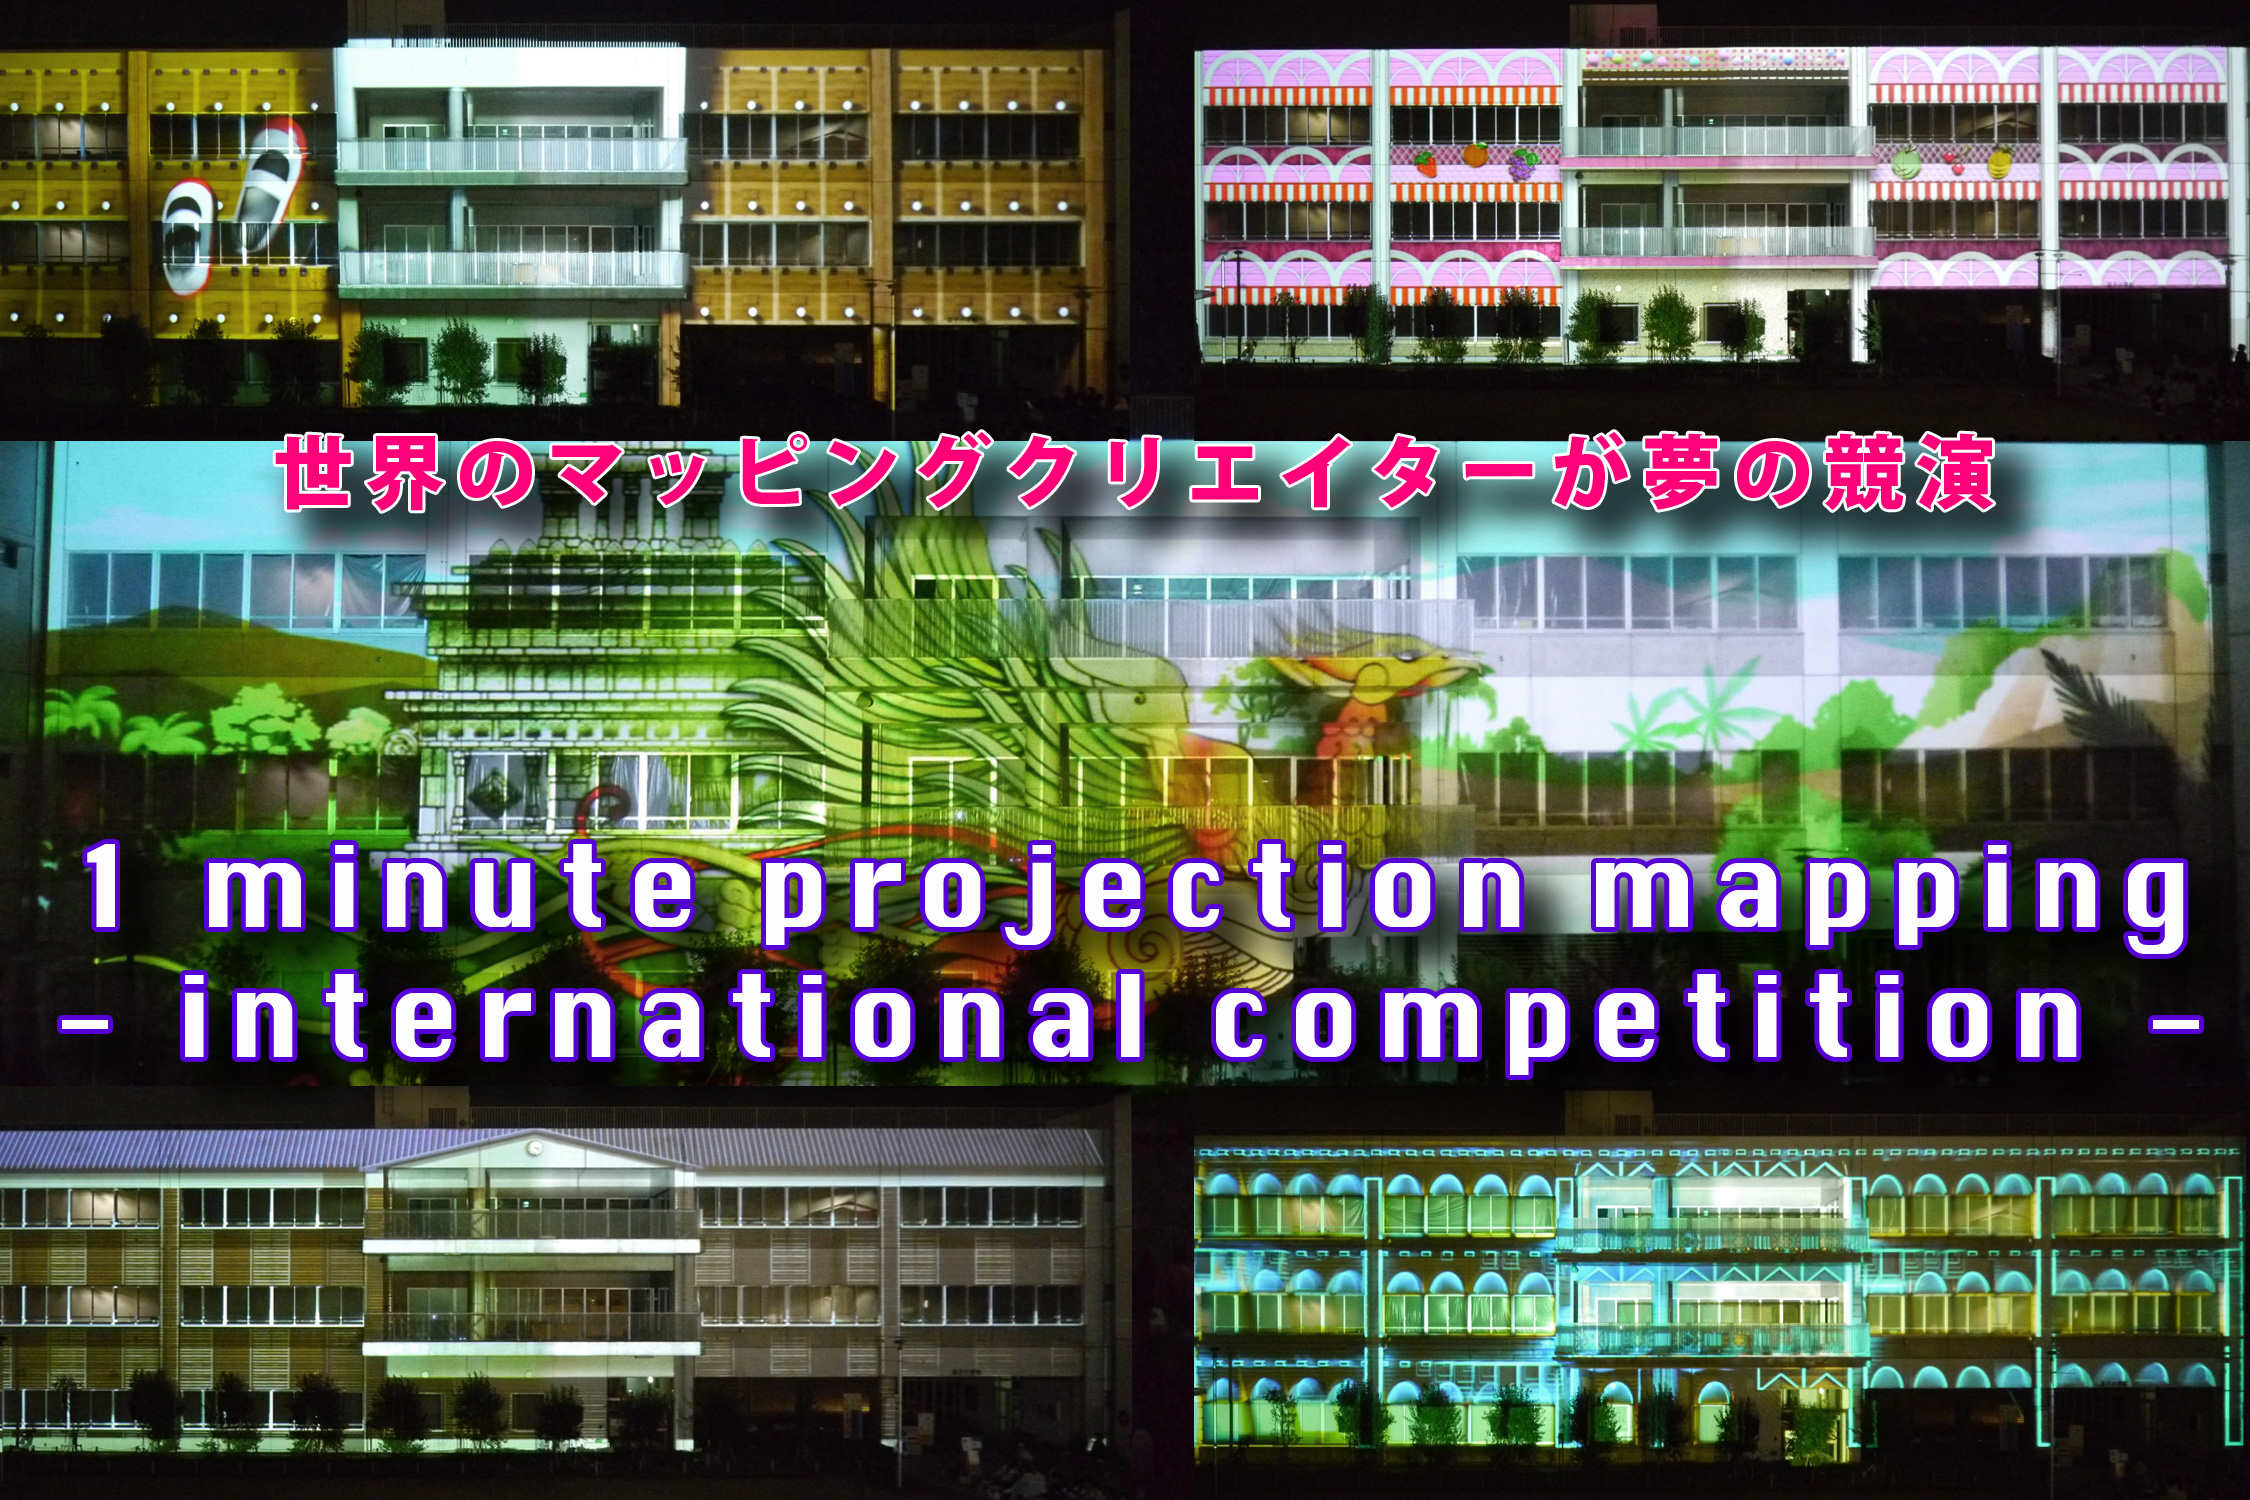 1minute projection mapping competition